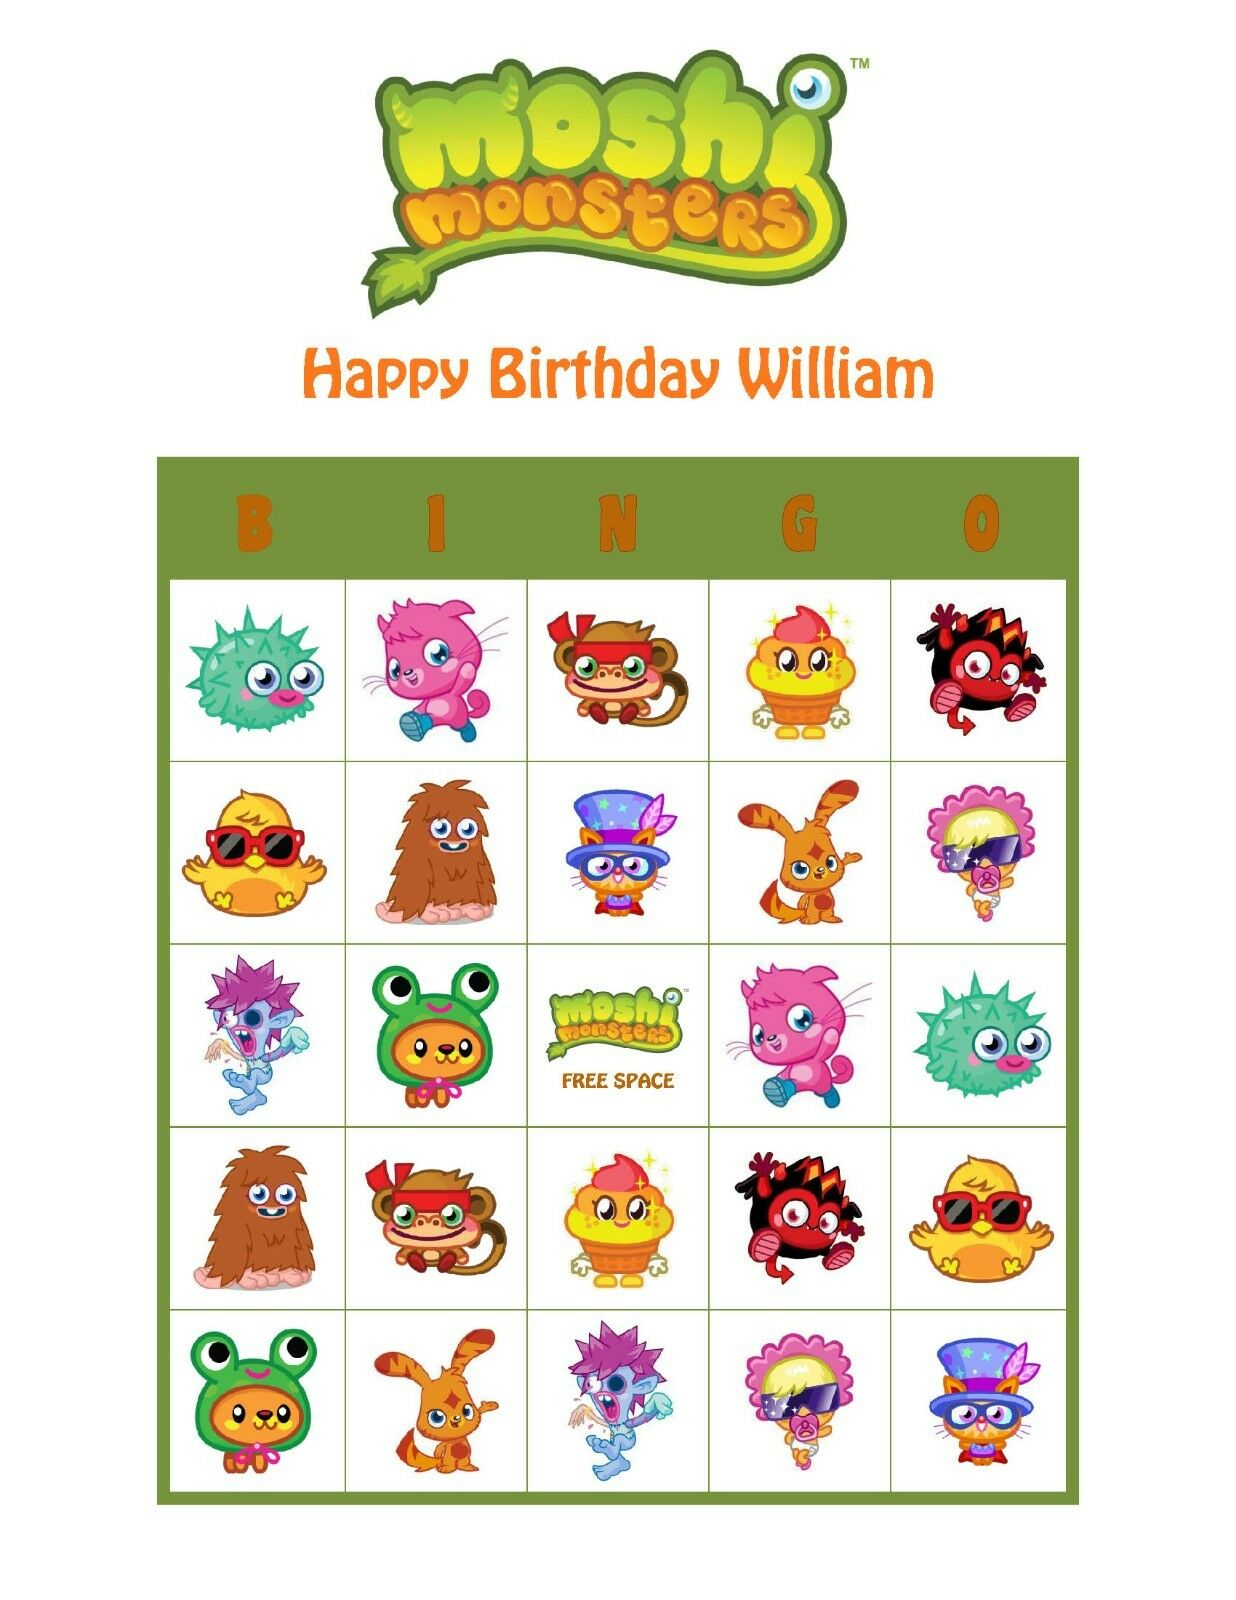 Moshi Monsters Personalized Birthday Party Game Activity Bingo Cards 1 Of 1FREE Shipping